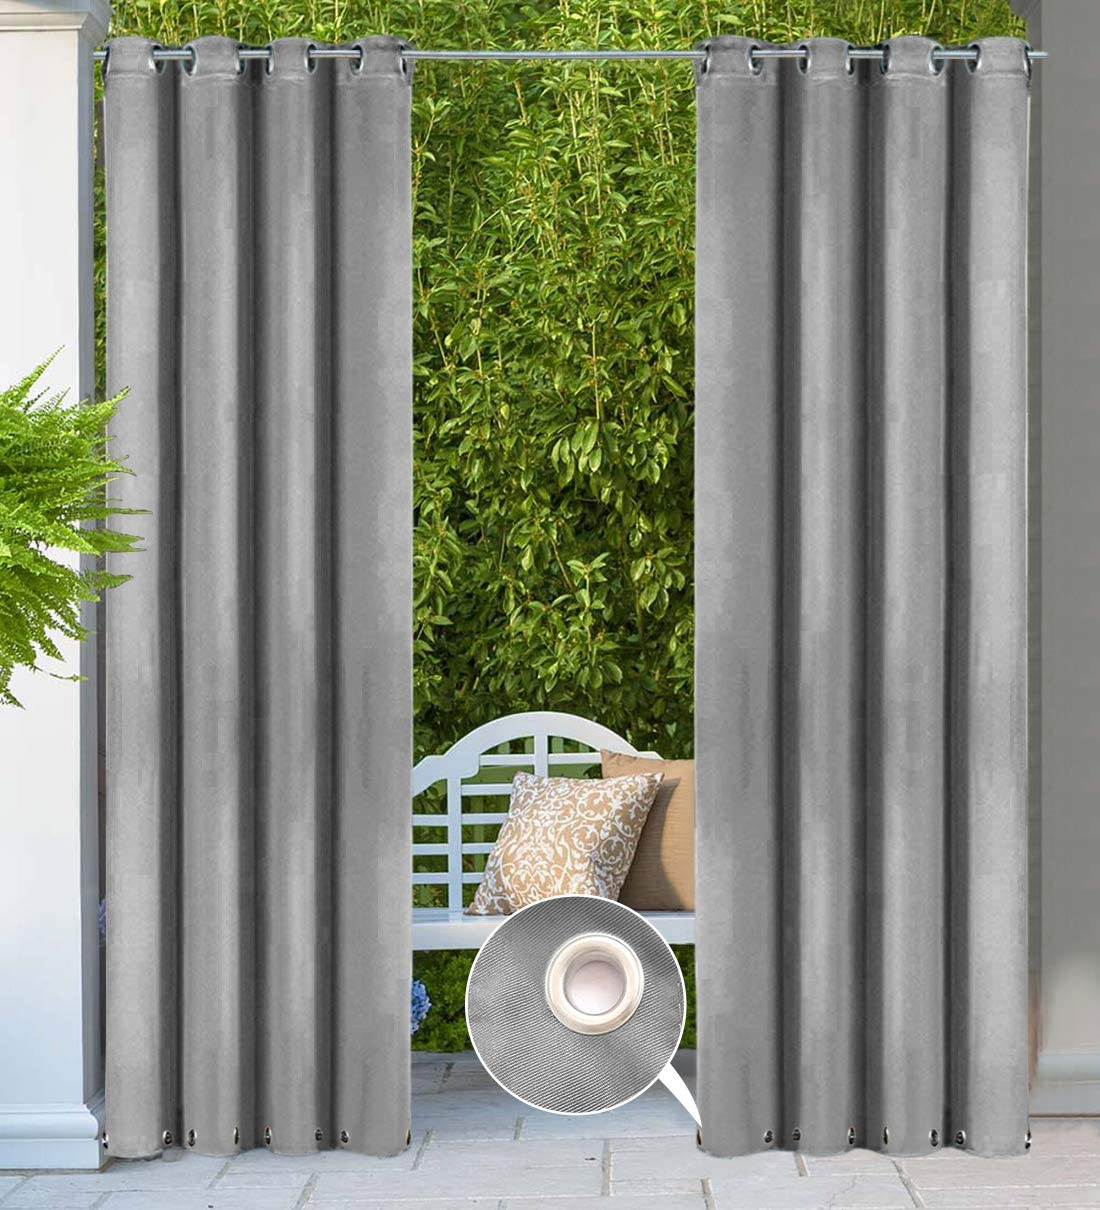 HGMart Outdoor Curtain Panel for Porch Patio,Top Tab Window Curtain with UV Ray Protected and Waterproof ,Easy to Hang On Light Green, 50 84